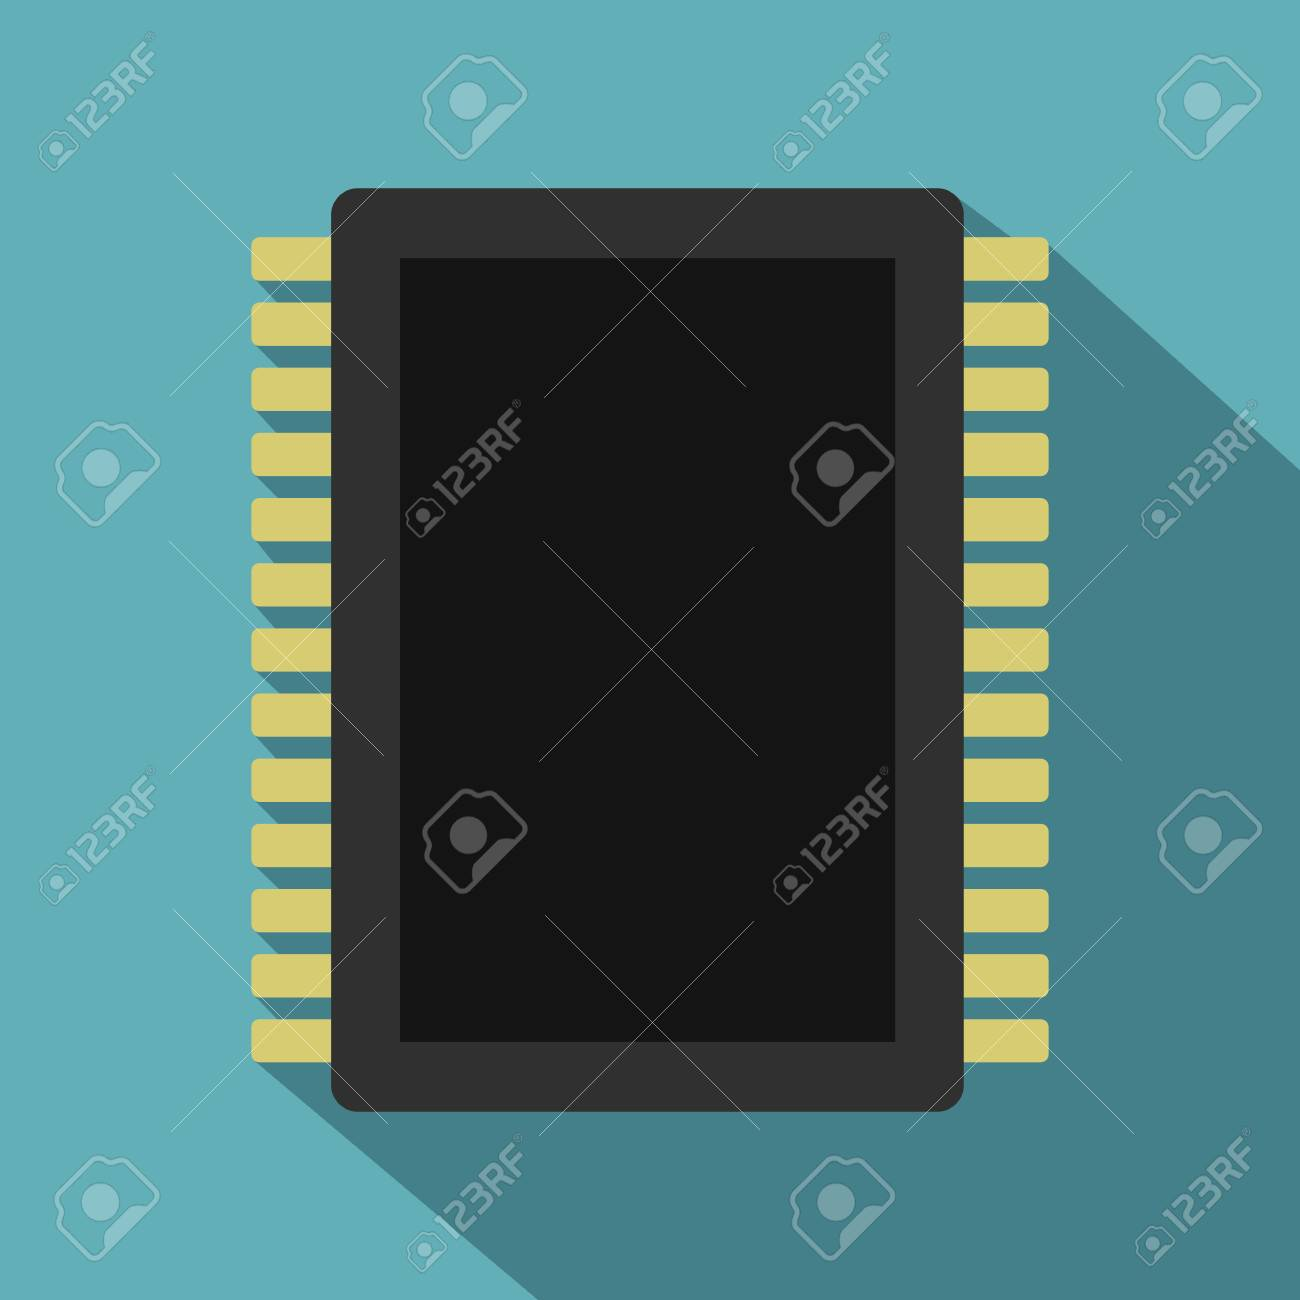 Computer Electronic Circuit Board Icon Flat Style Royalty Free Symbols Stock Vector 75597350